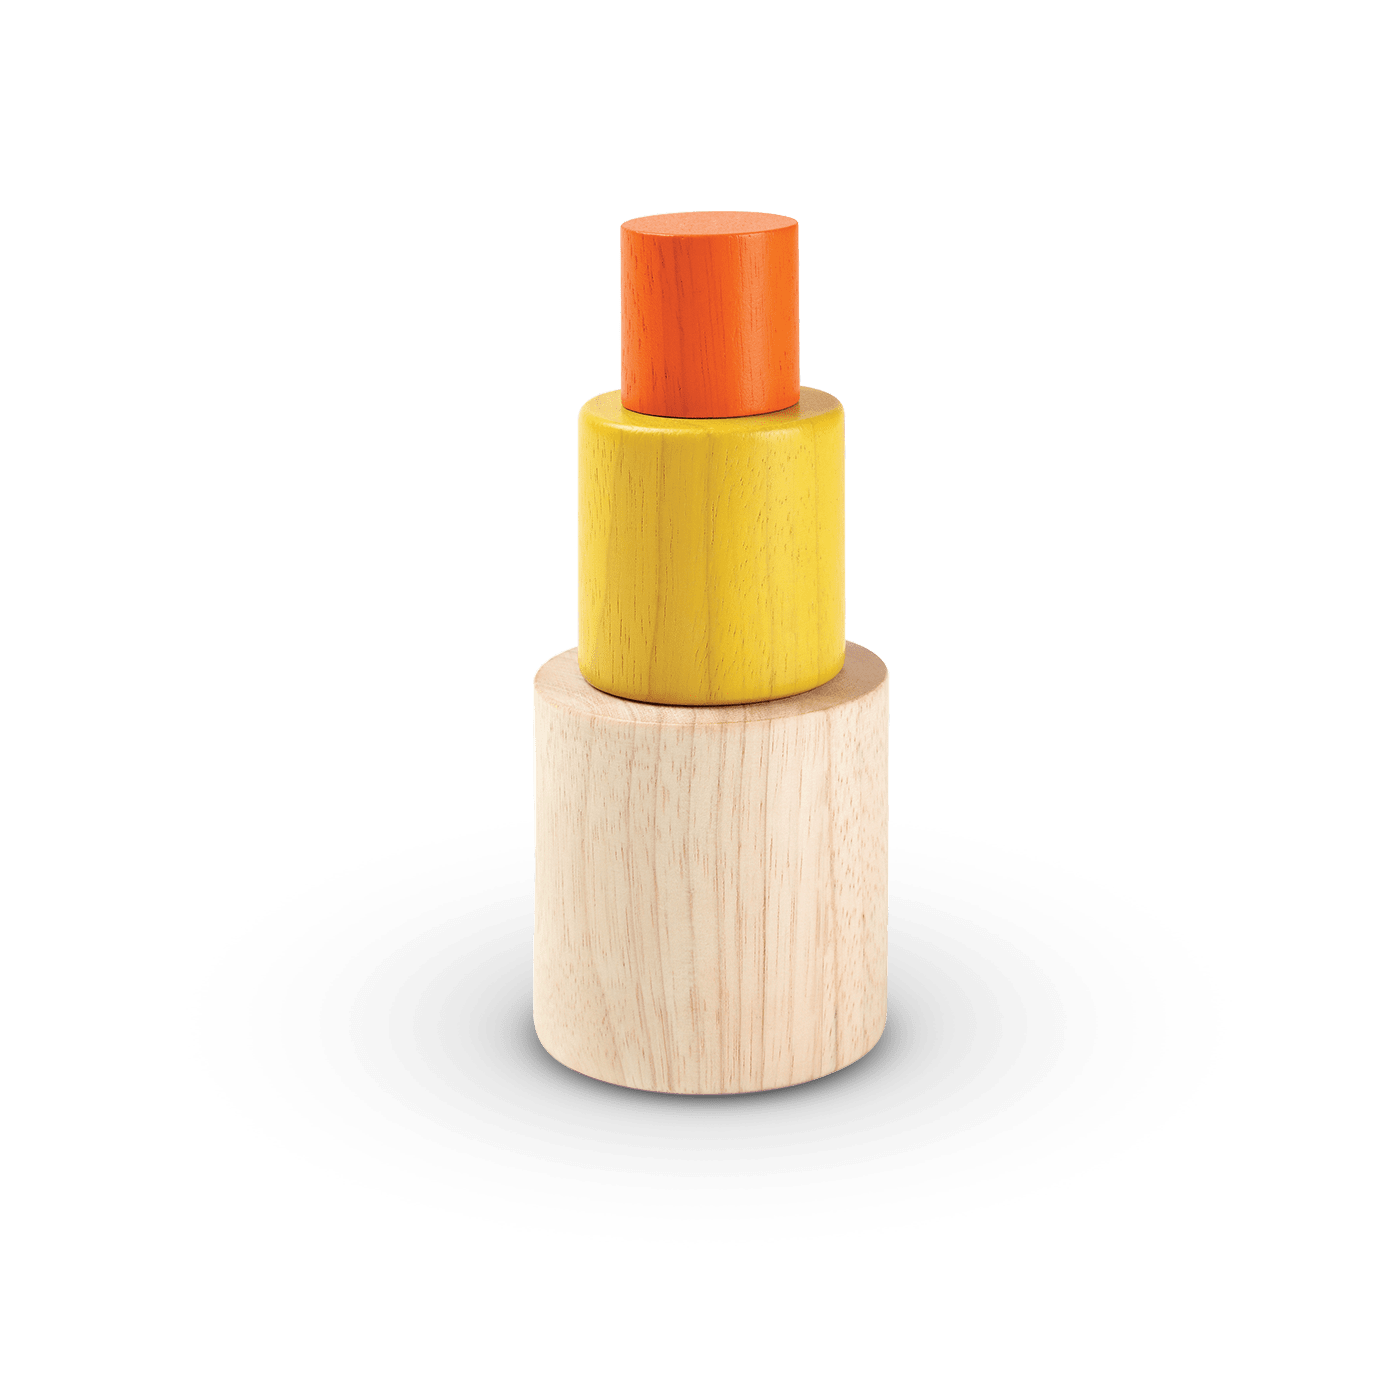 5376_PlanToys_NESTING_CYLINDERS_Learning_and_Education_Visual_Coordination_Mathematical_Logical_Problem_Solving_Language_and_Communications_12m_Wooden_toys_Education_toys_Safety_Toys_Non-toxic_0.png